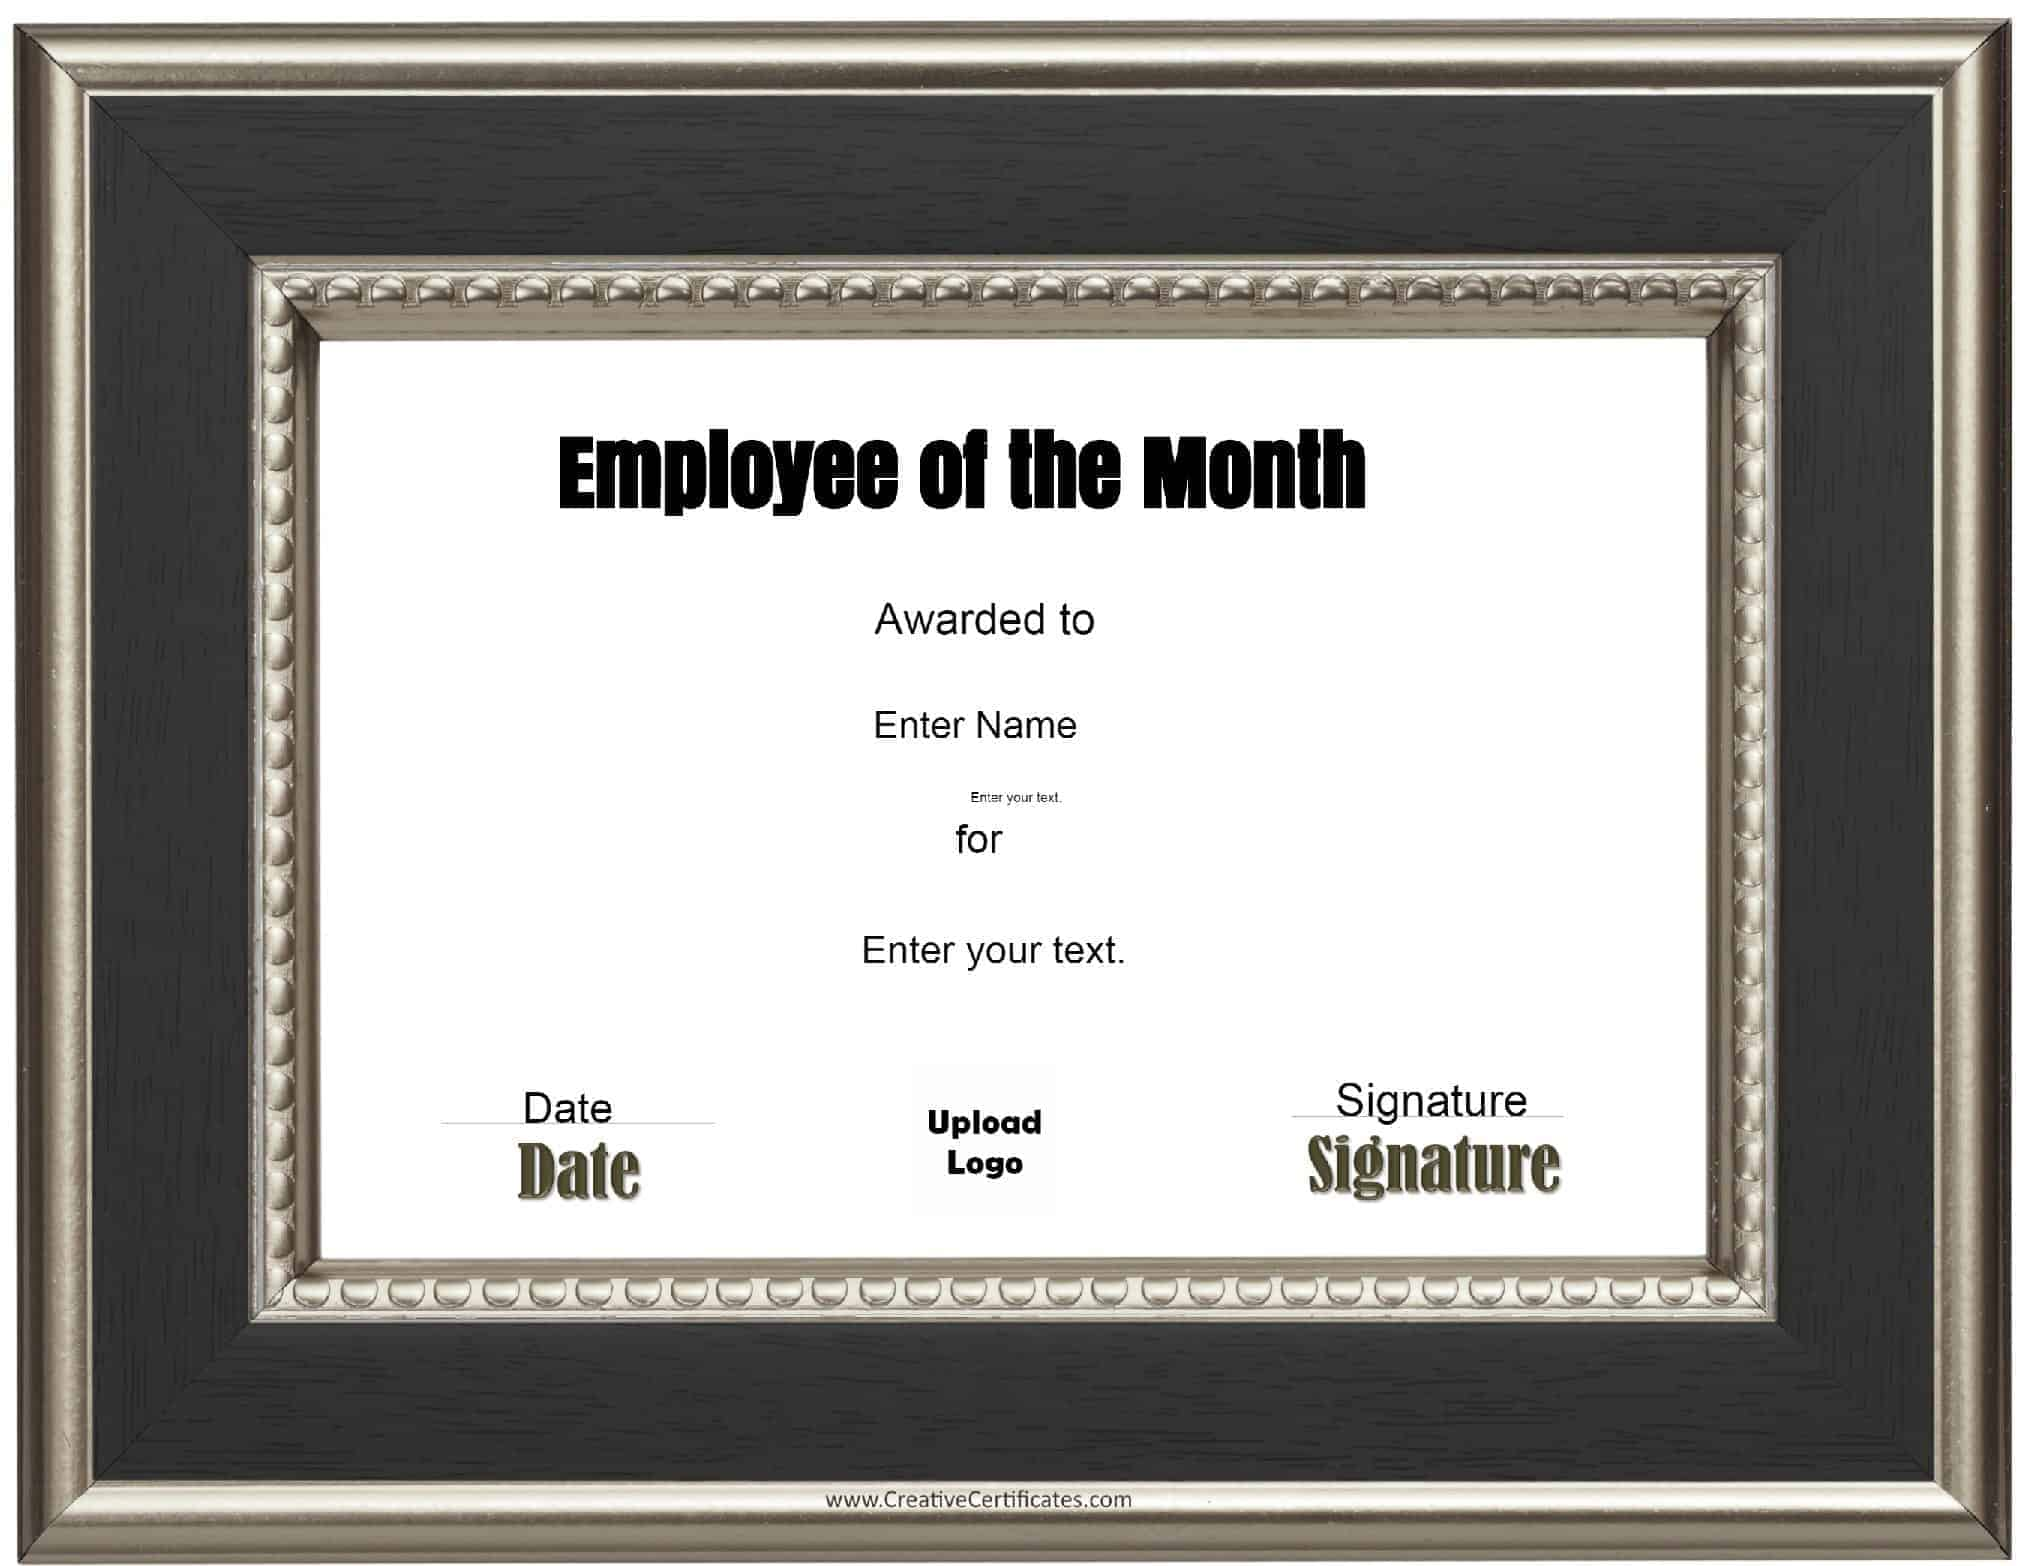 employee of the month certificate template - free custom employee of the month certificate